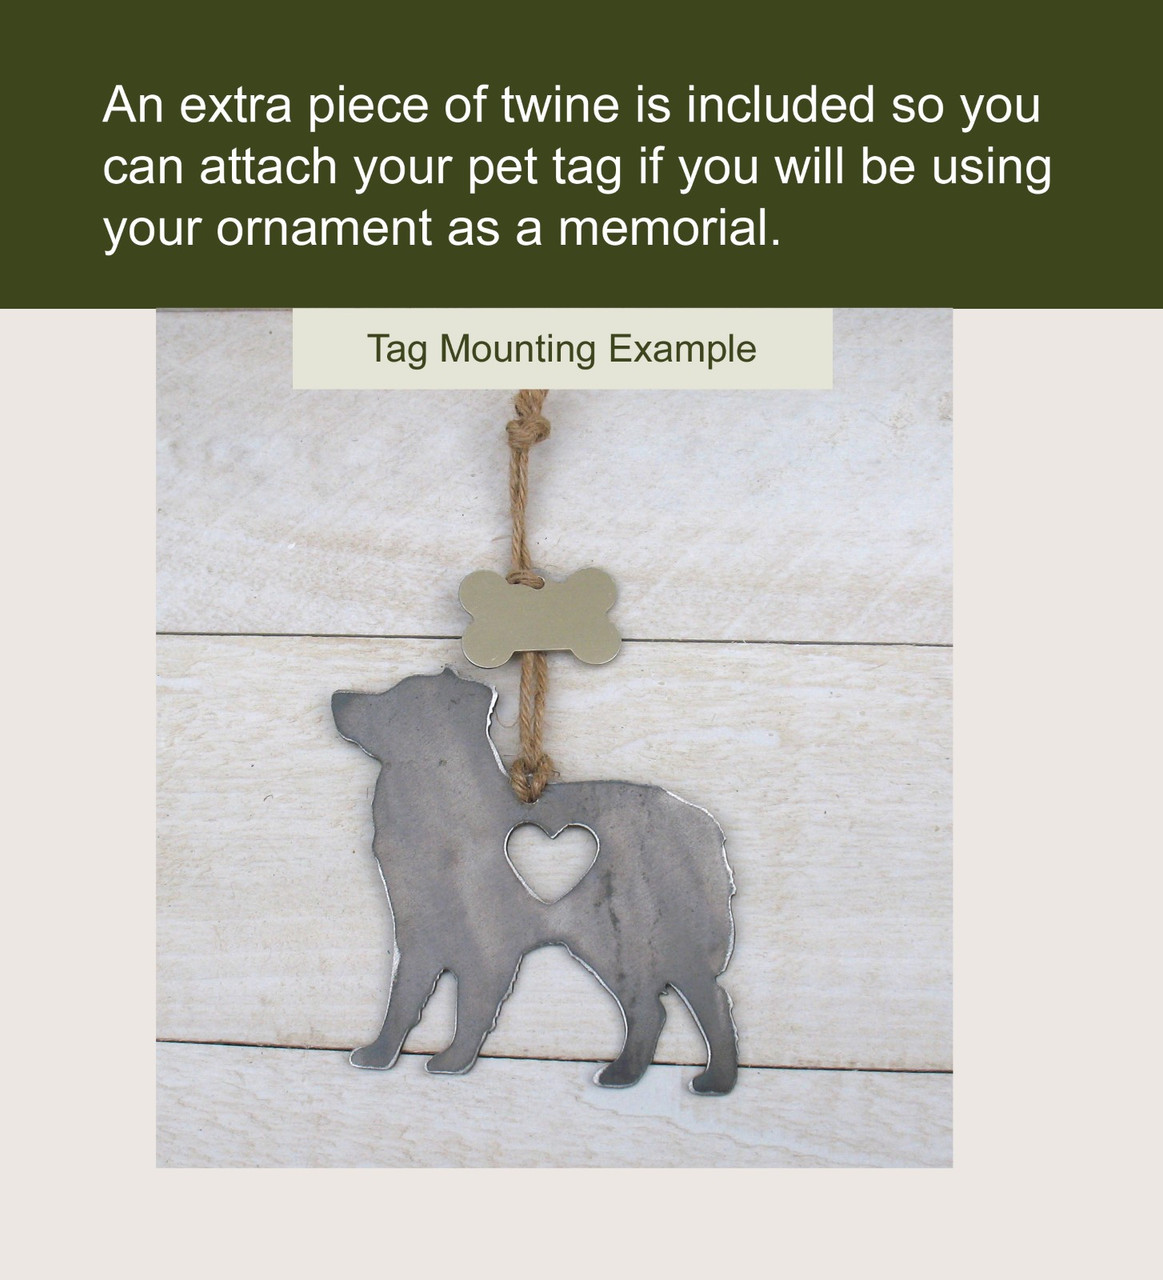 Rottweiler Dog Ornament 1 Pet Memorial W/ Angel Wings - Pet Loss Dog Sympathy Remembrance Gift - Metal Dog Christmas Ornament